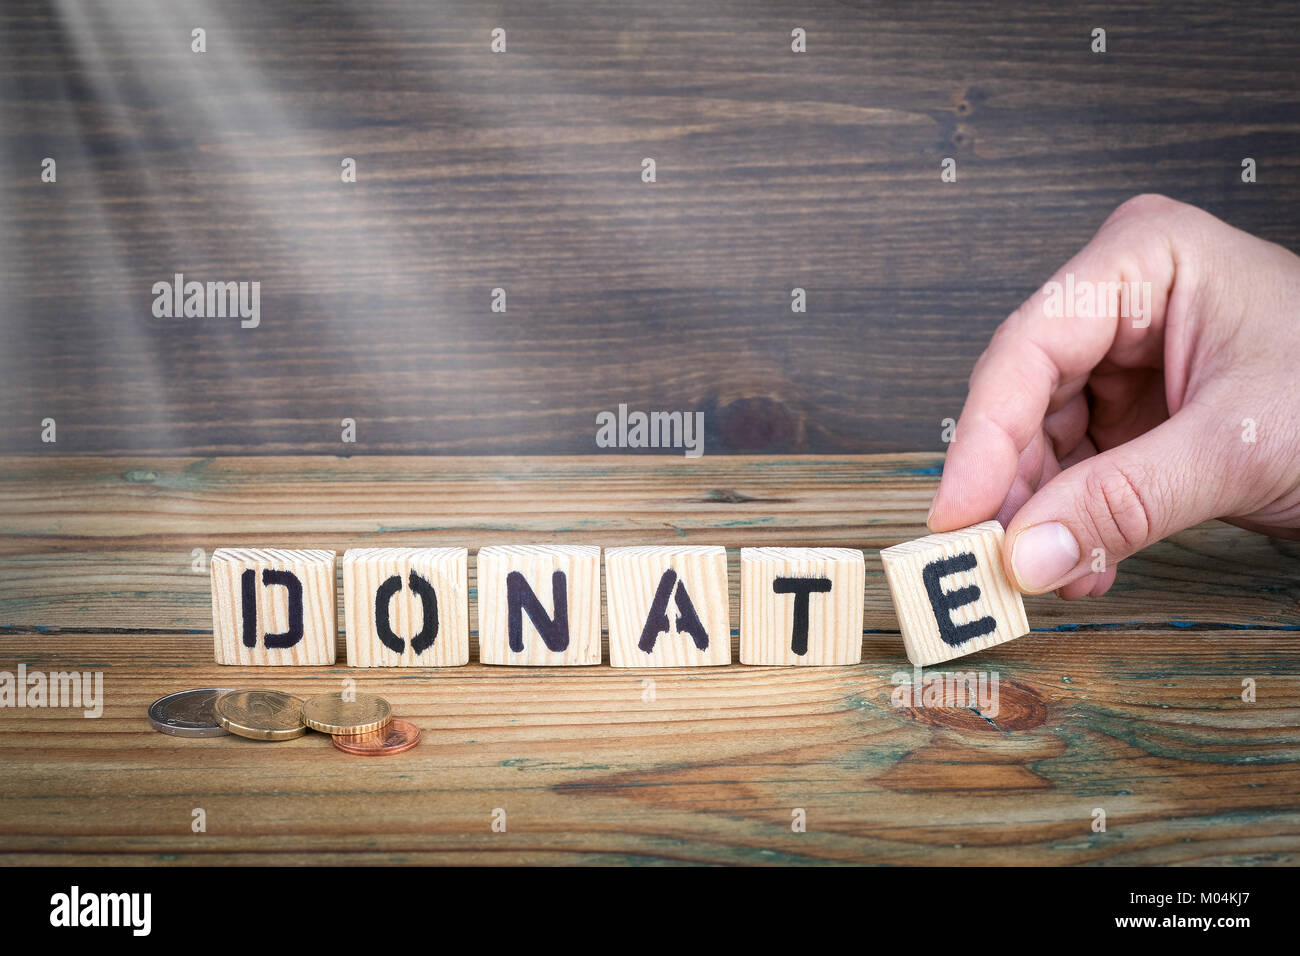 donate. Wooden letters on the office desk, informative and communication background - Stock Image